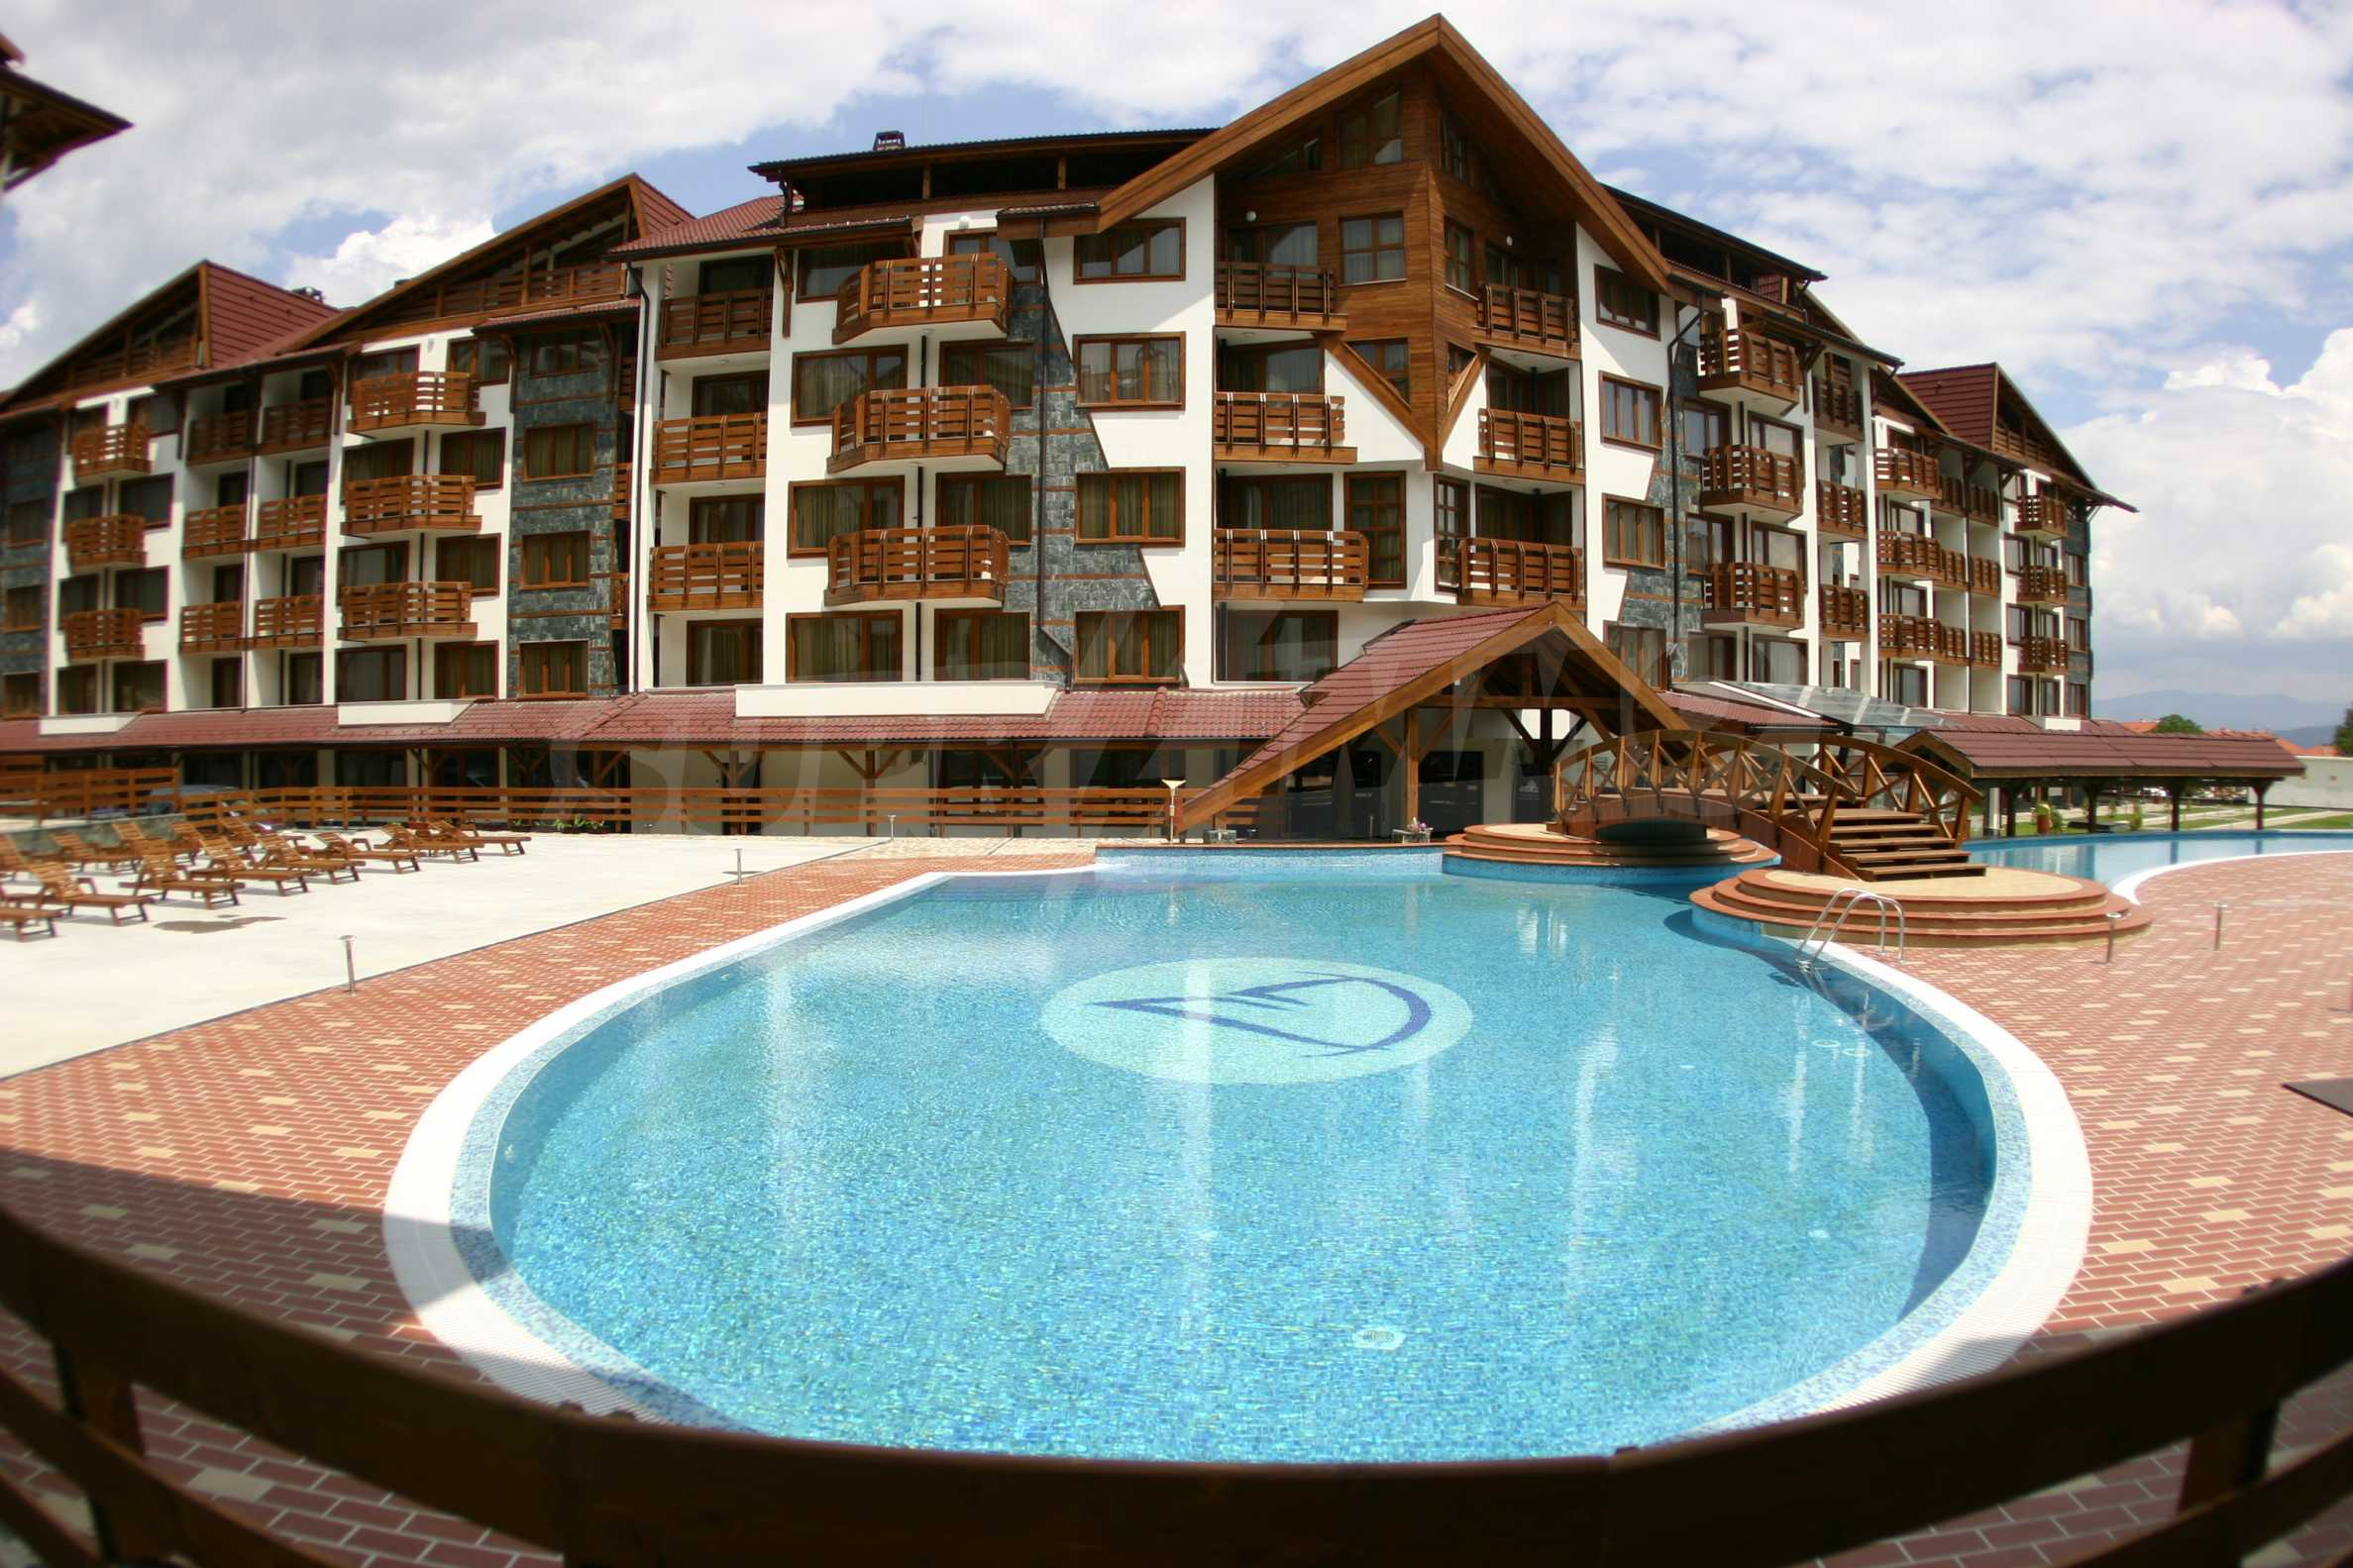 Studio for sale in the best gated complex in Bansko 11